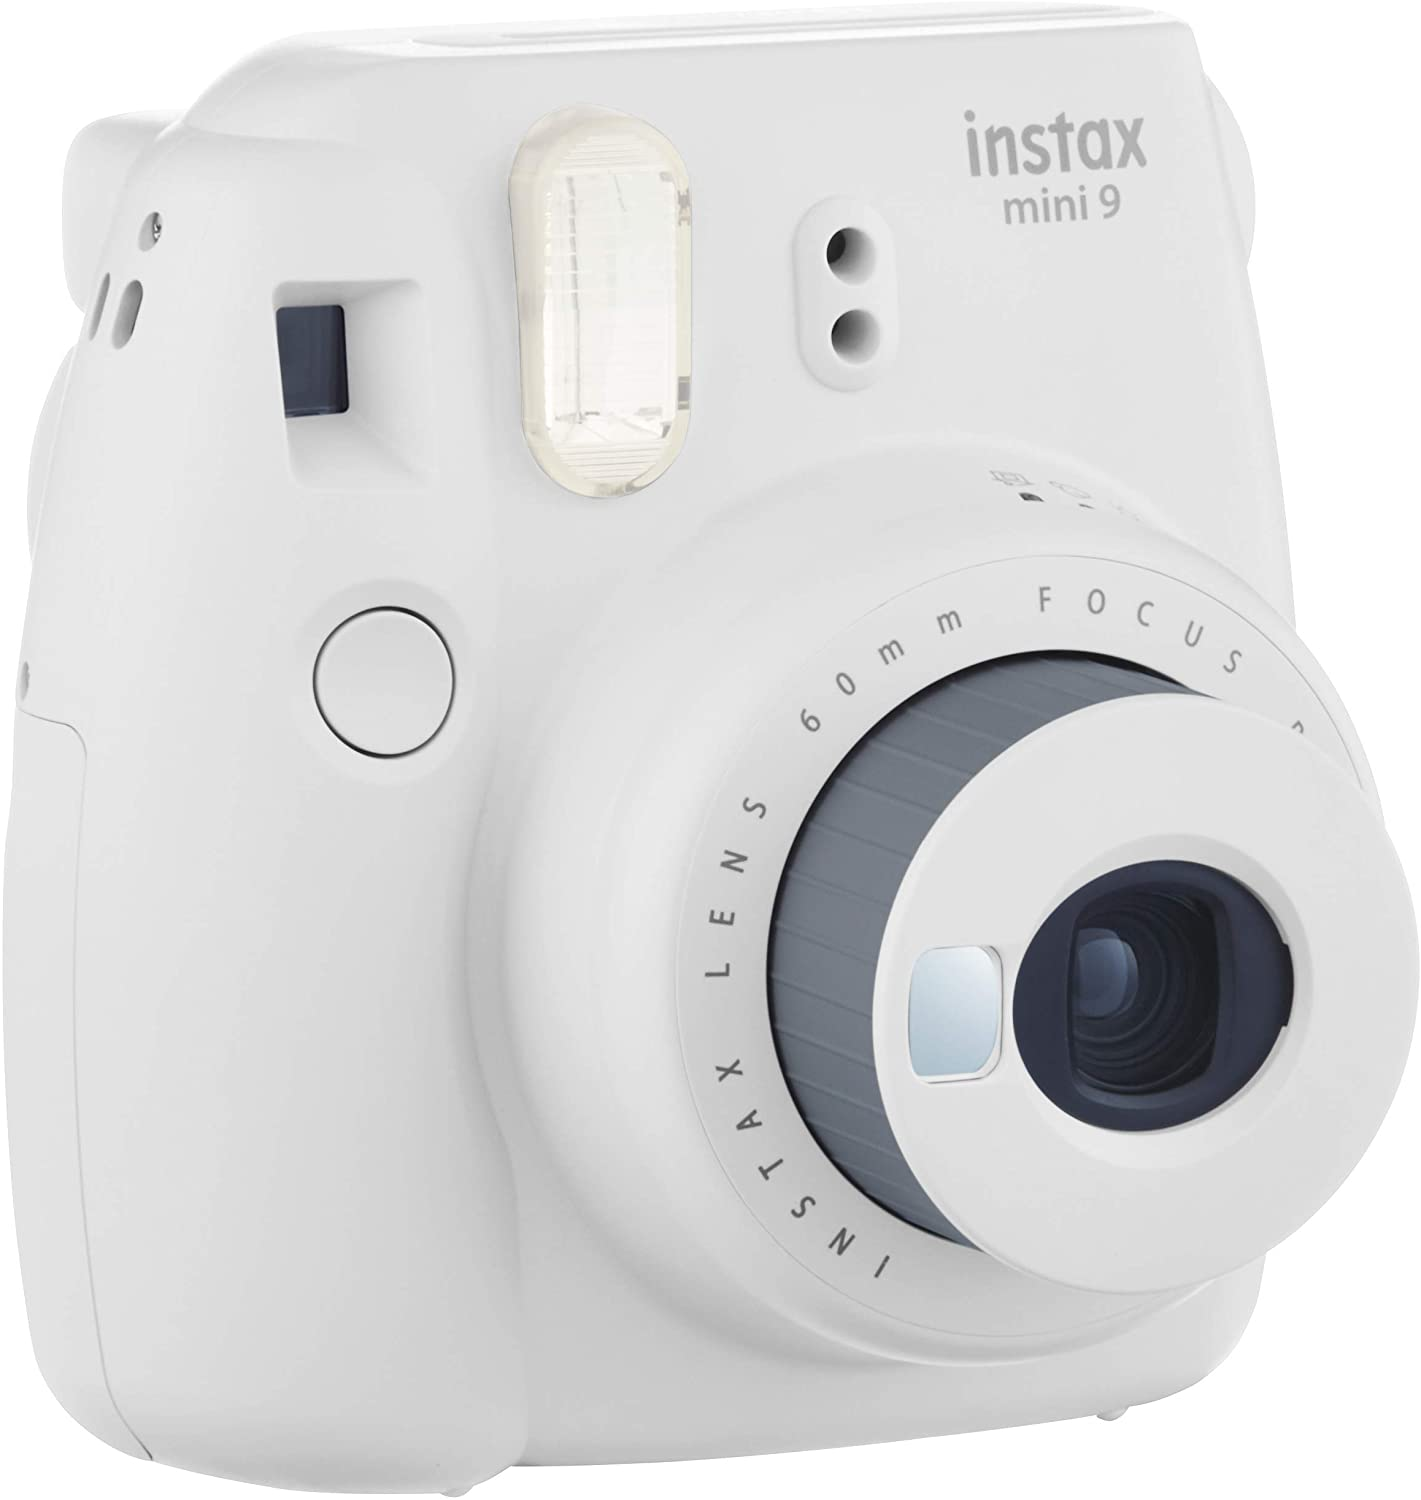 Instax Mini 9 Instant Camera | Fujifilm